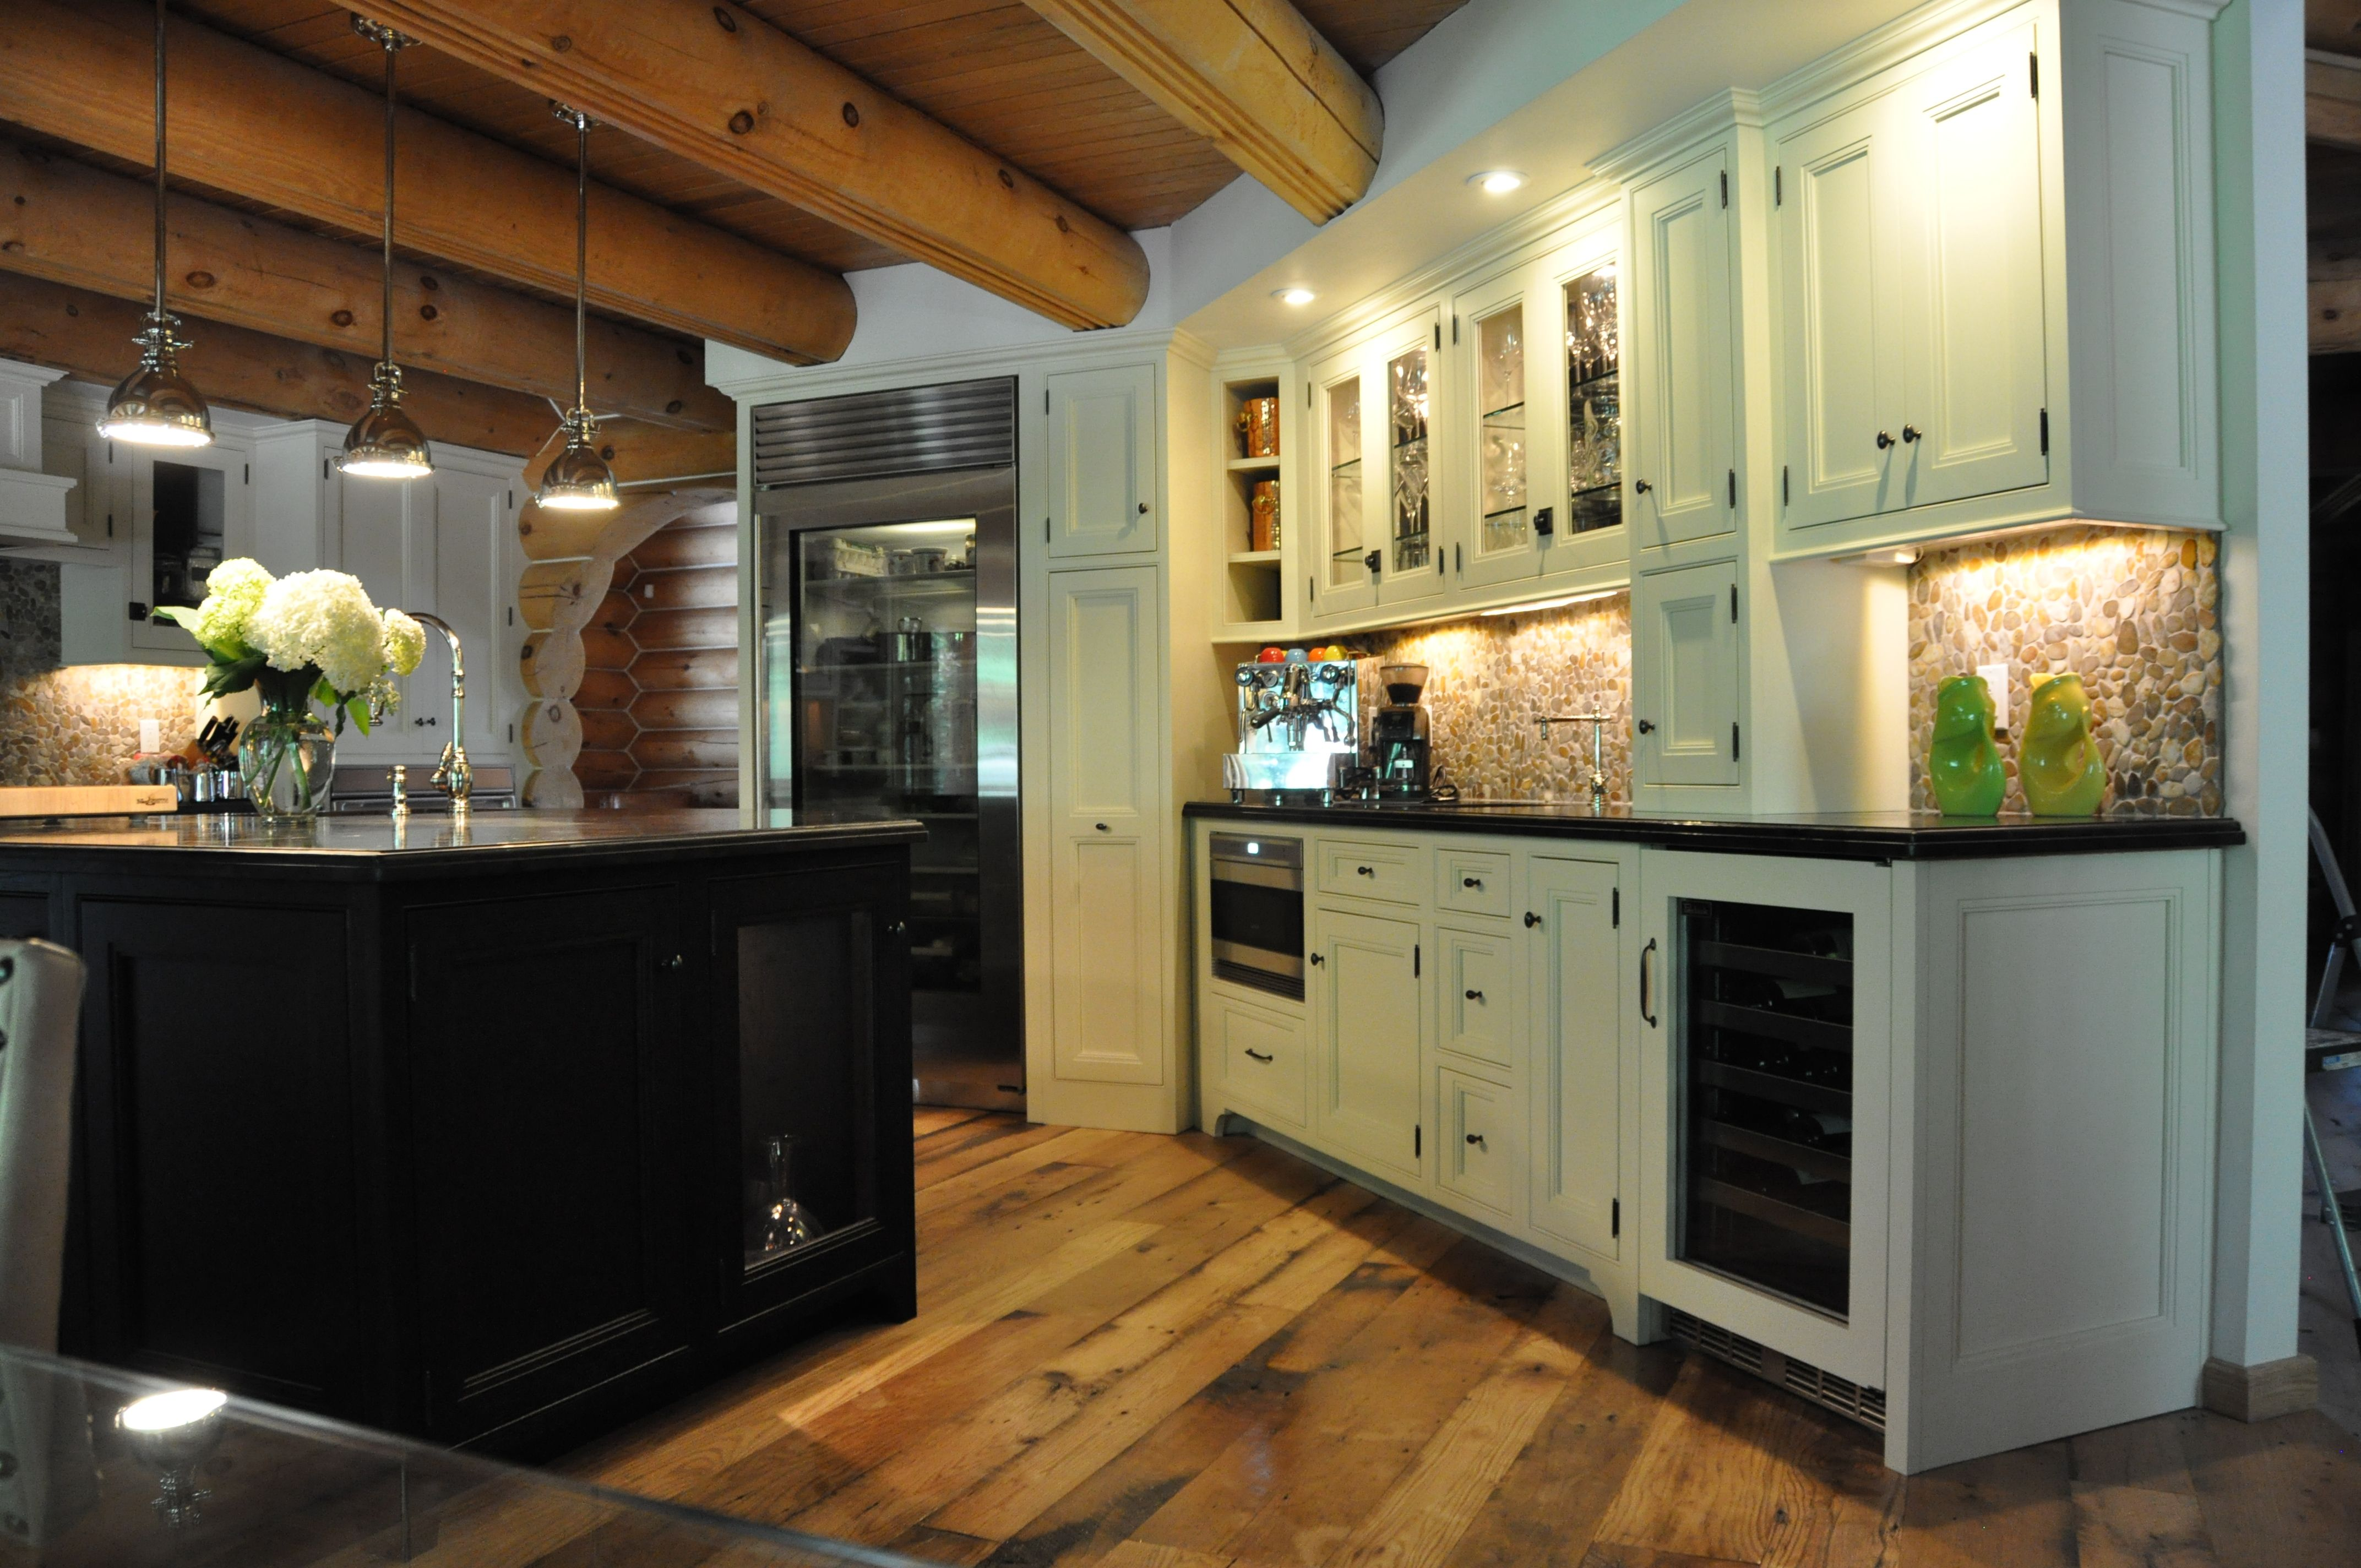 Log Home Kitchen Cabinet IdeasBest Log Cabin Kitchen Ideas Images Amazing Design  Ideas Siteo Us.